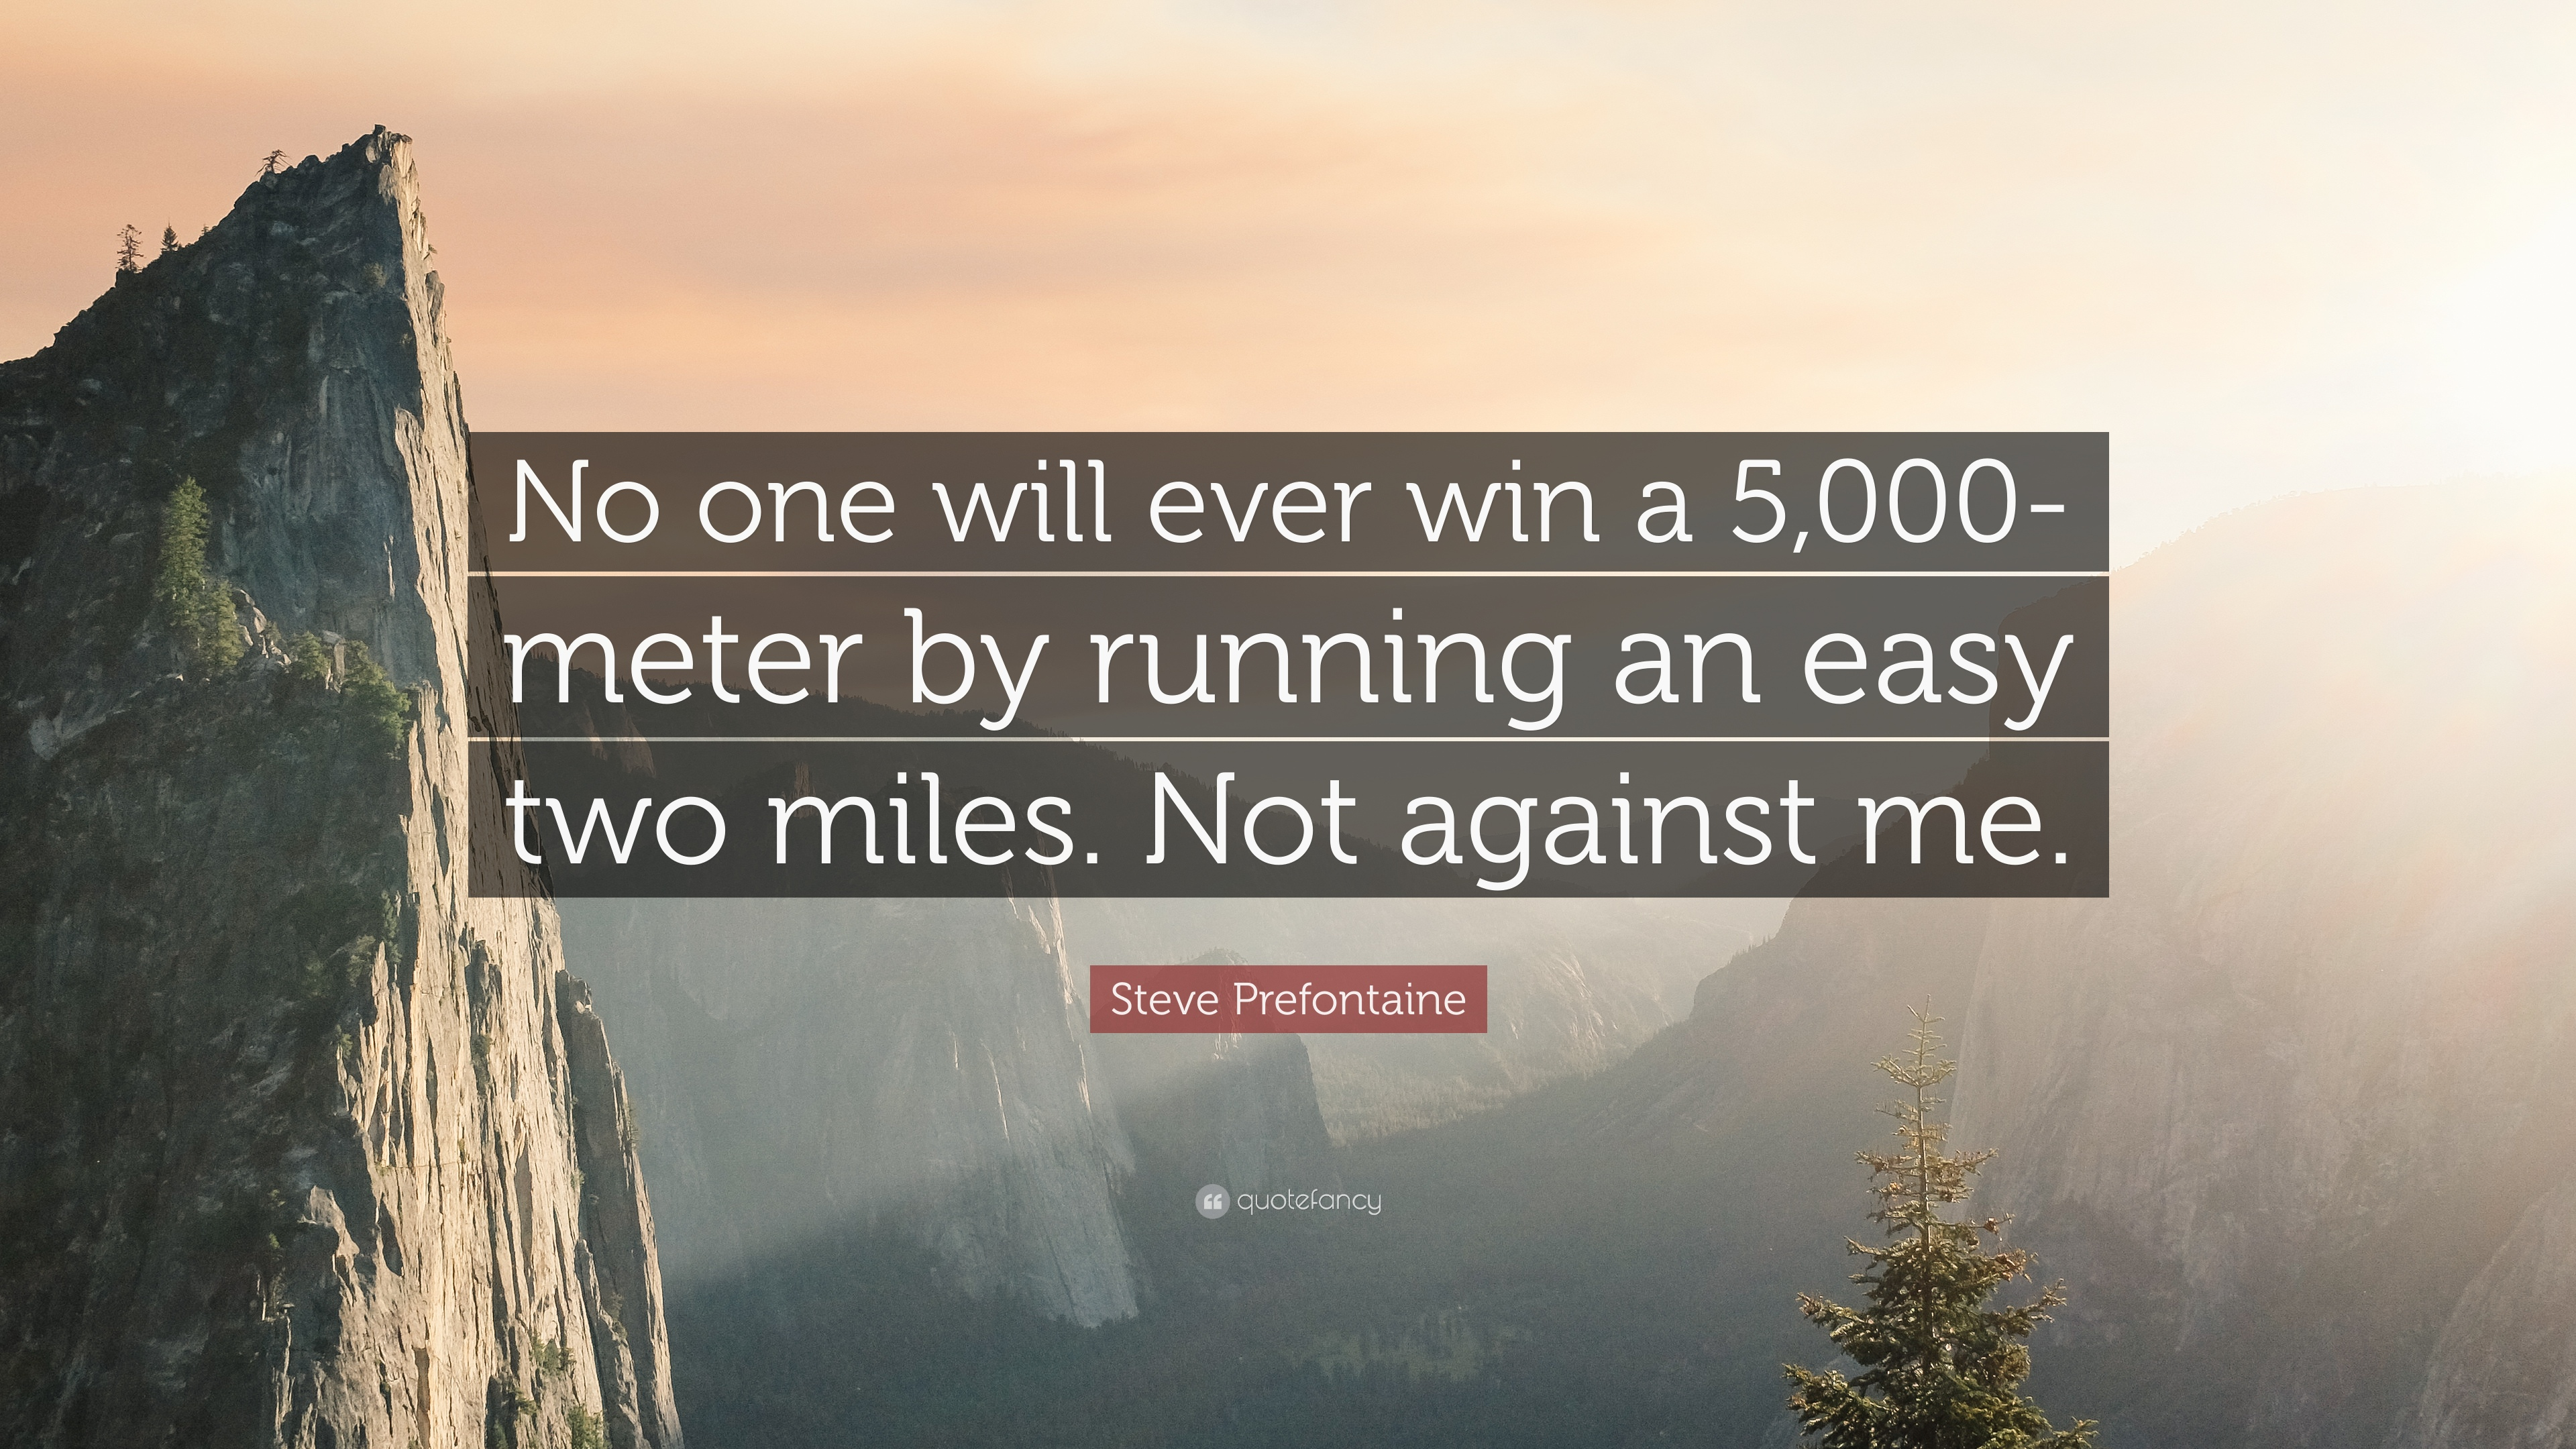 Steve Prefontaine Quotes (35 Wallpapers)